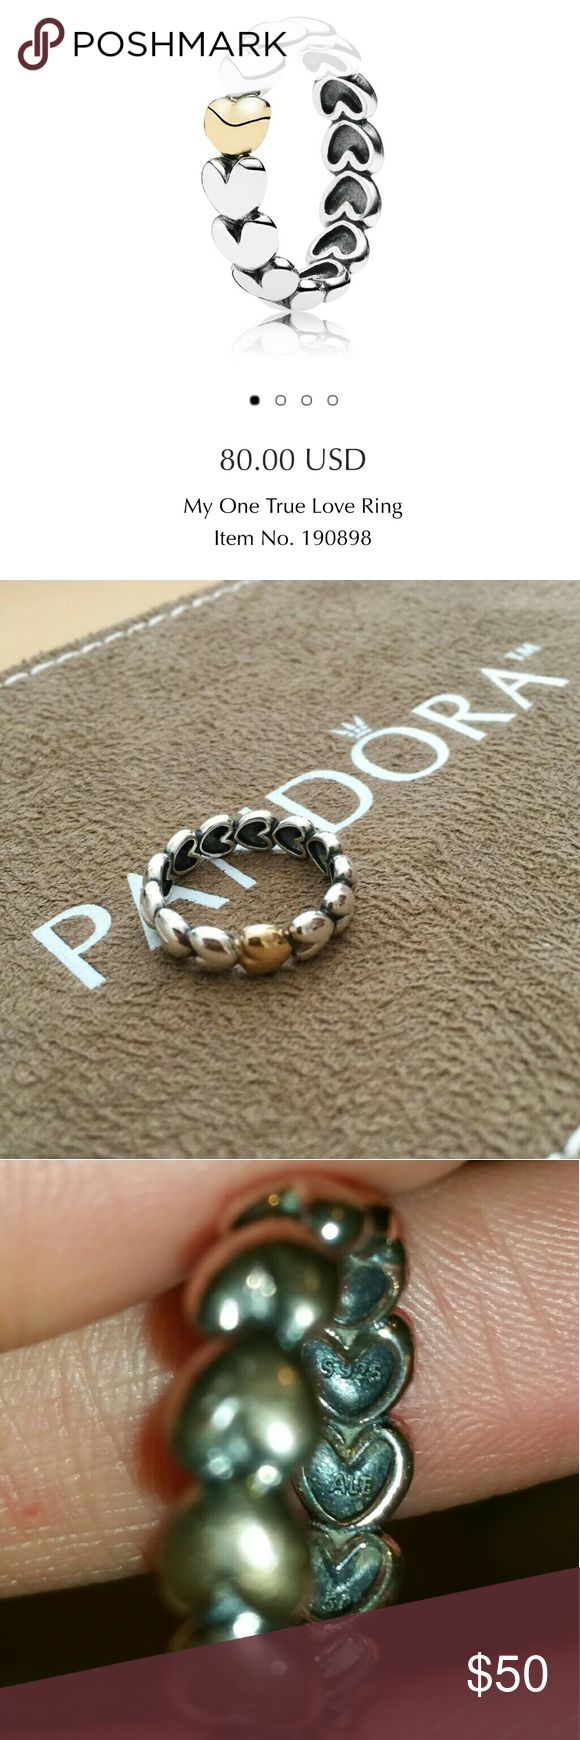 Pandora 14k My One True Love Ring Authentic Pandora  Two toned, sterling silver and 14k gold.  Very well loved. Ring does need cleaning! (Free at local Pandora)  Size 50.  Selling cheap due to it needing cleaning Pandora Jewelry Rings